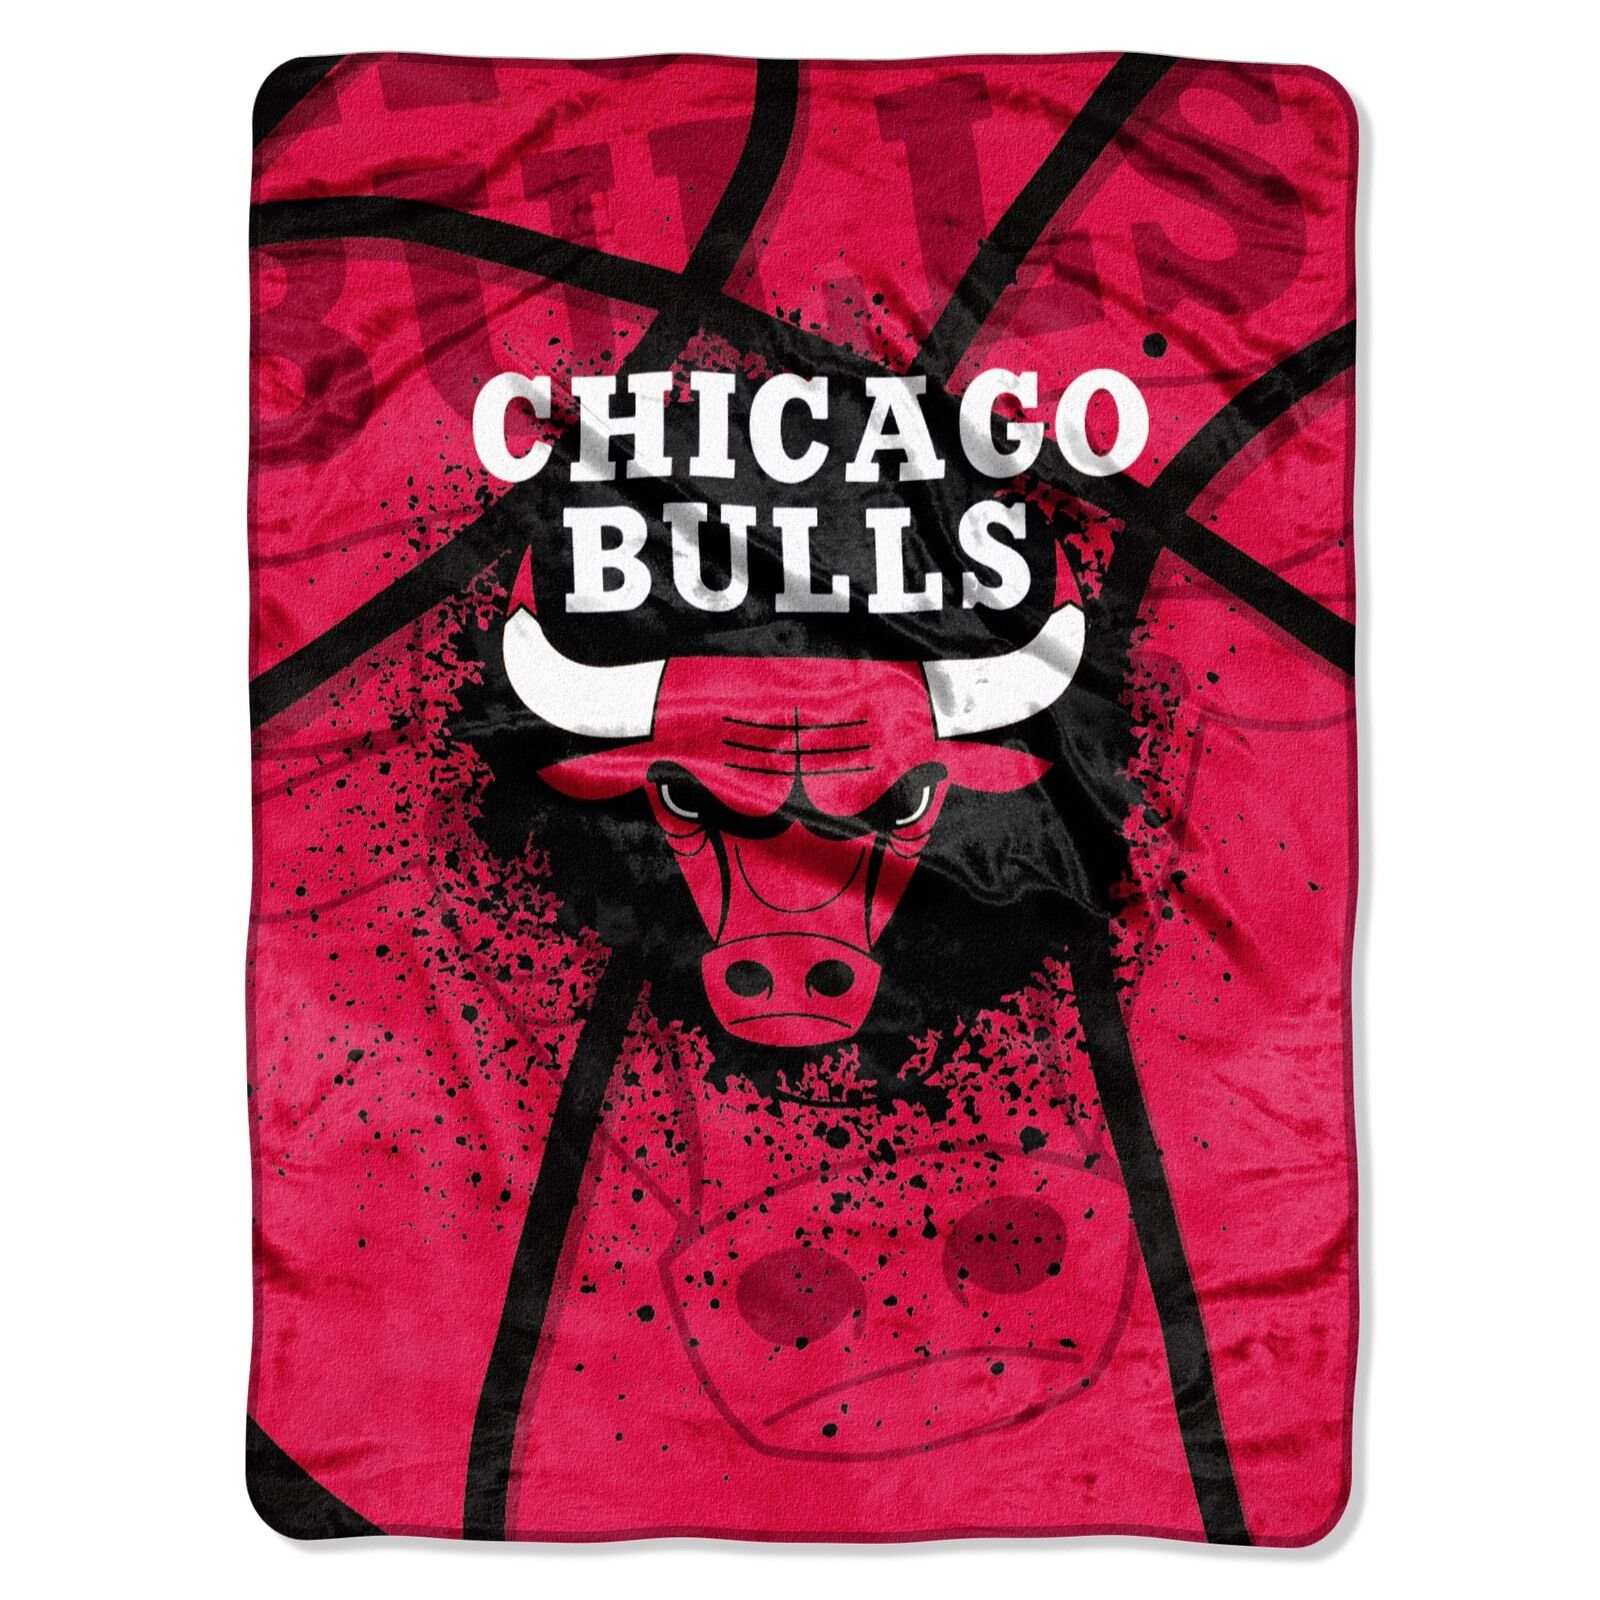 Chicago Bulls  Decke Kuschel Picknickdecke Super Plush neu NBA Basketball